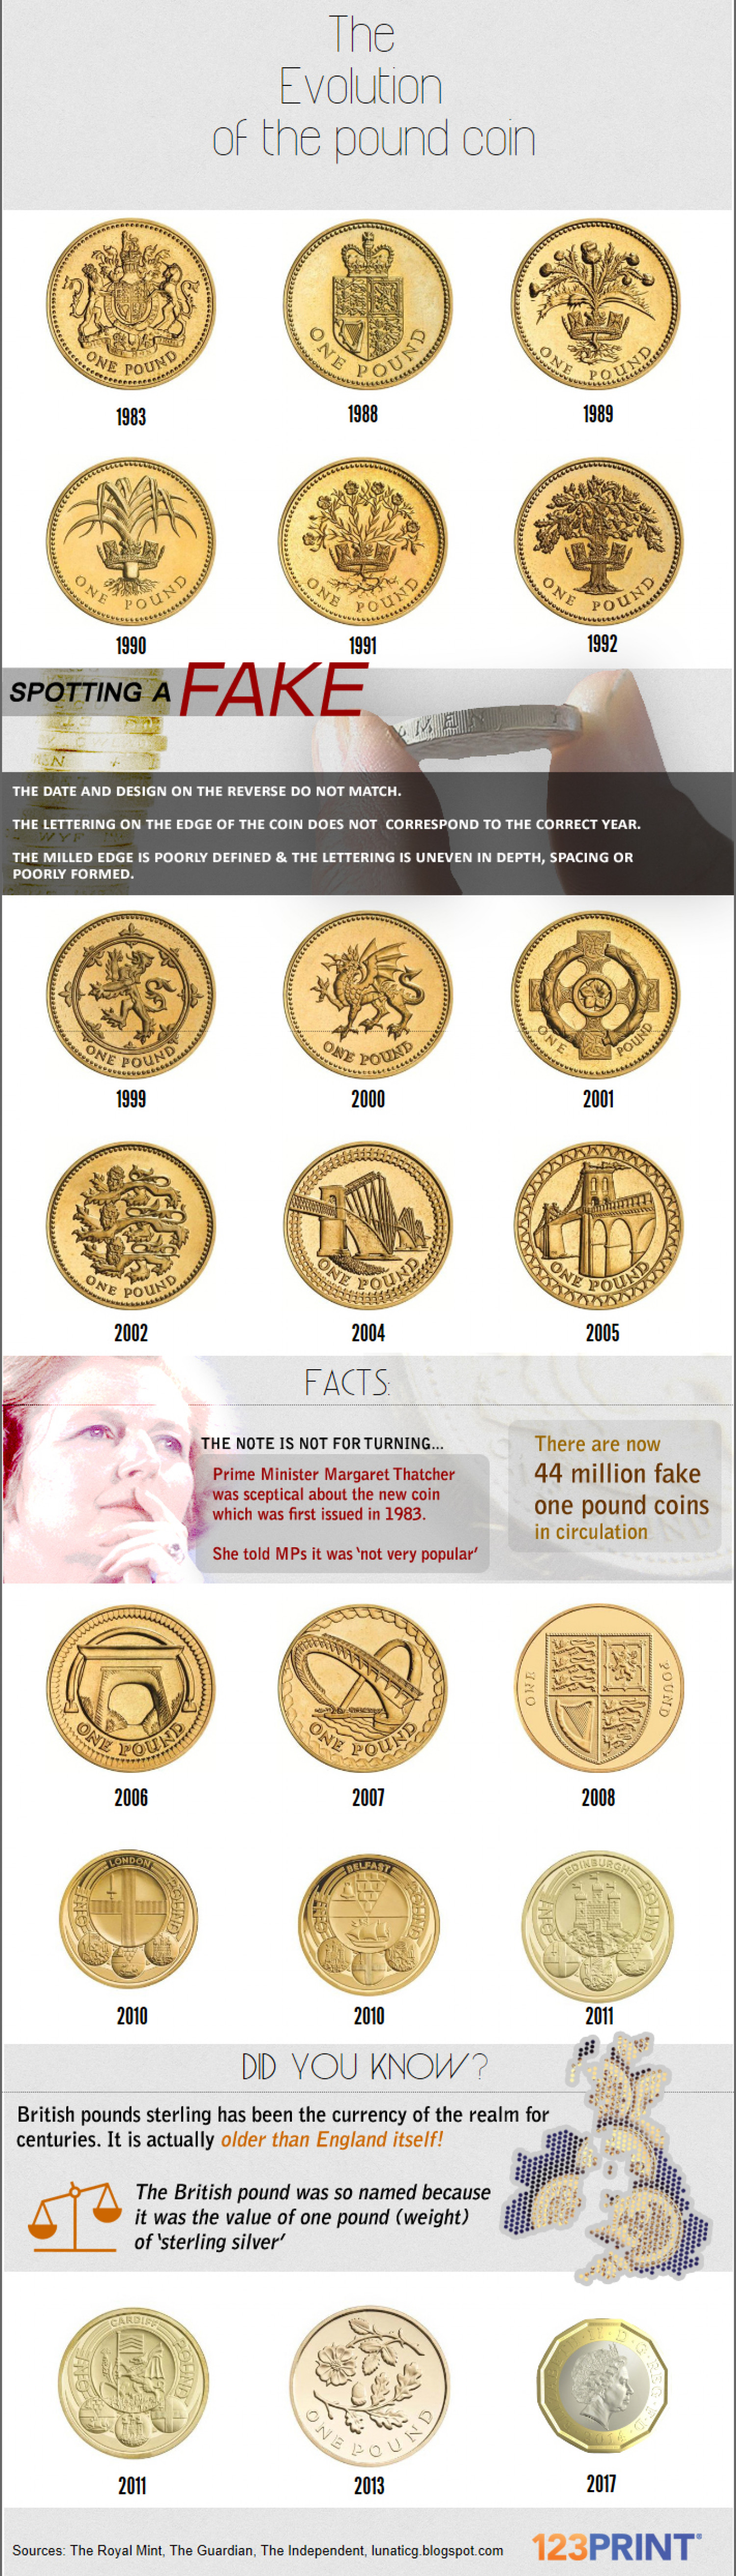 The Evolution of the Pound Coin Infographic